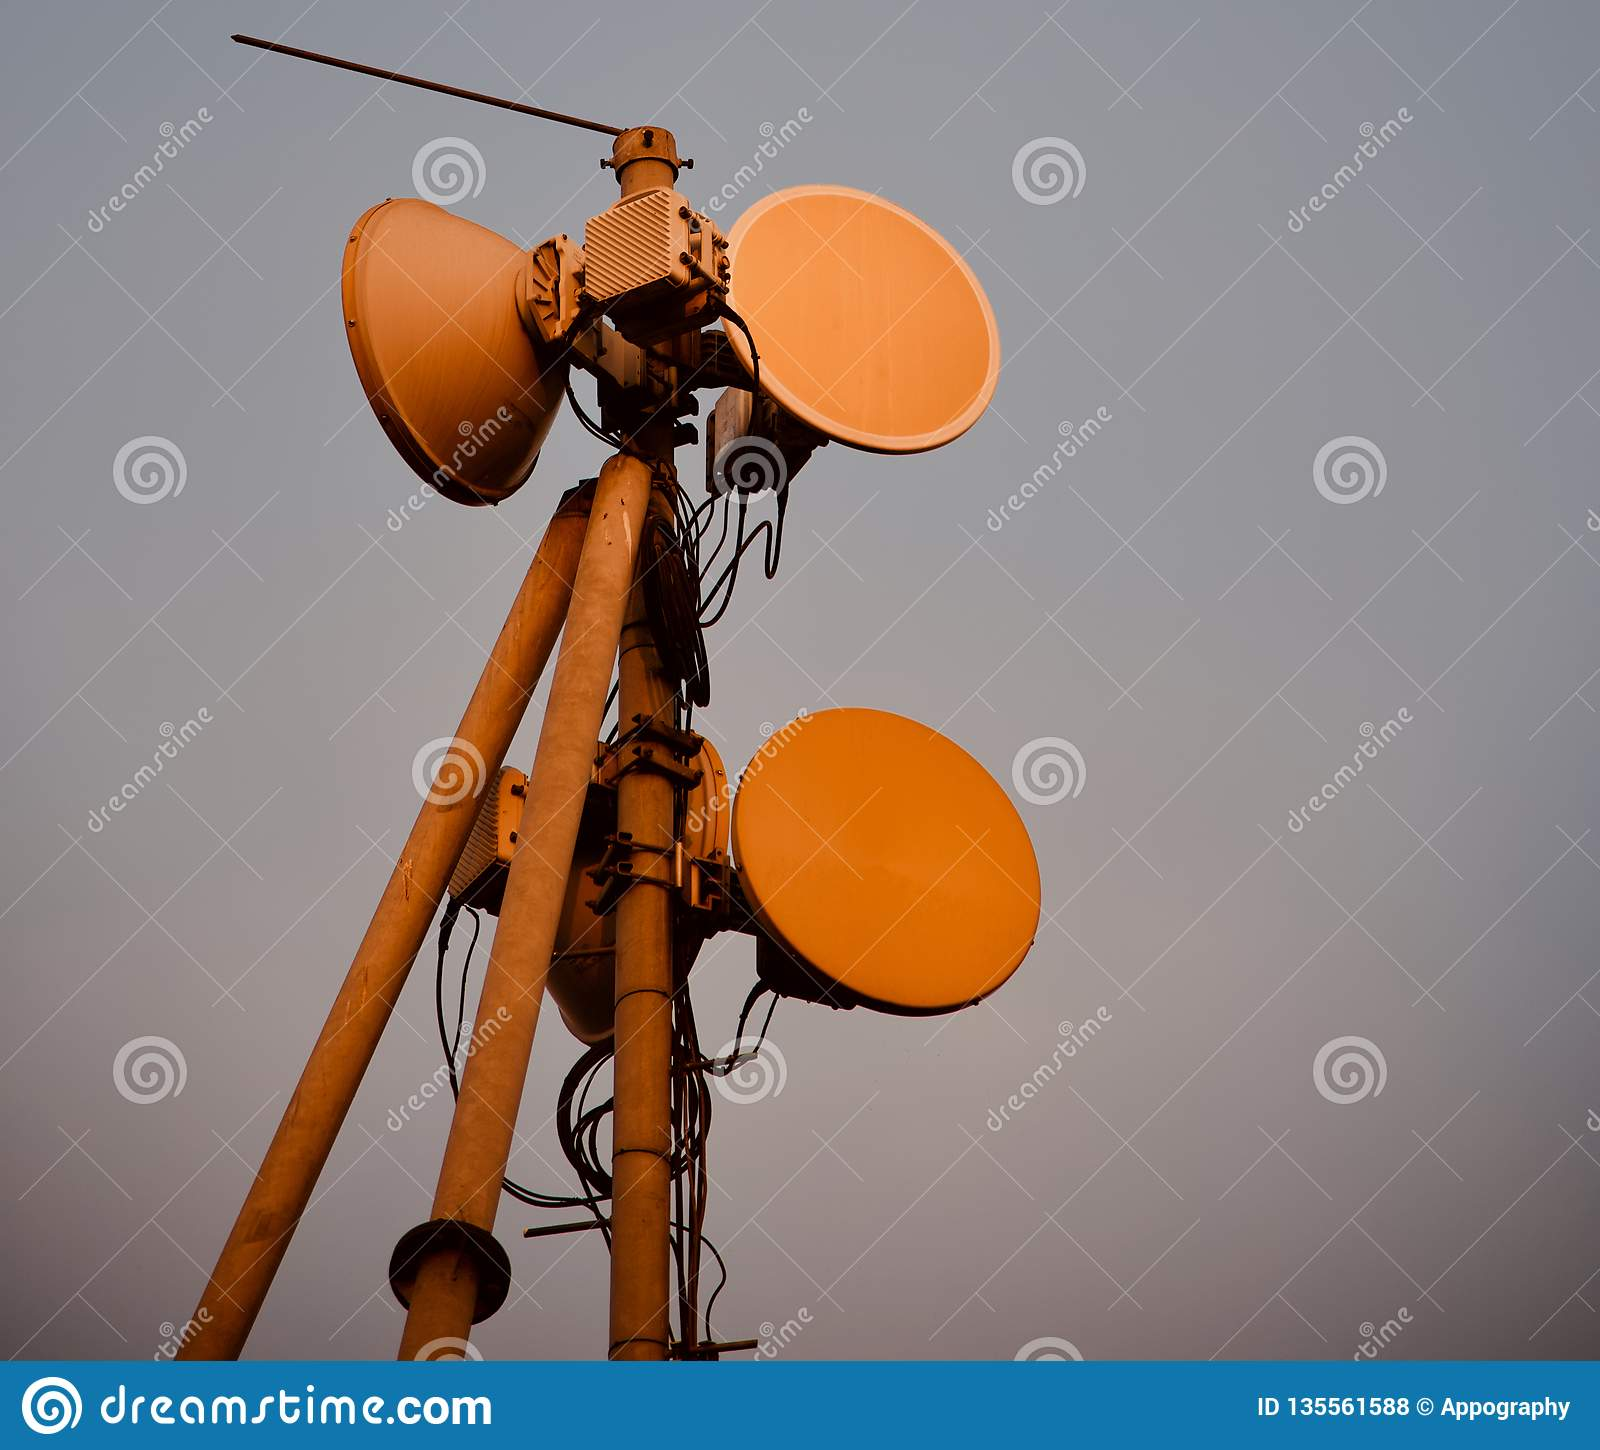 Microwaves antenna of a mobile network tower